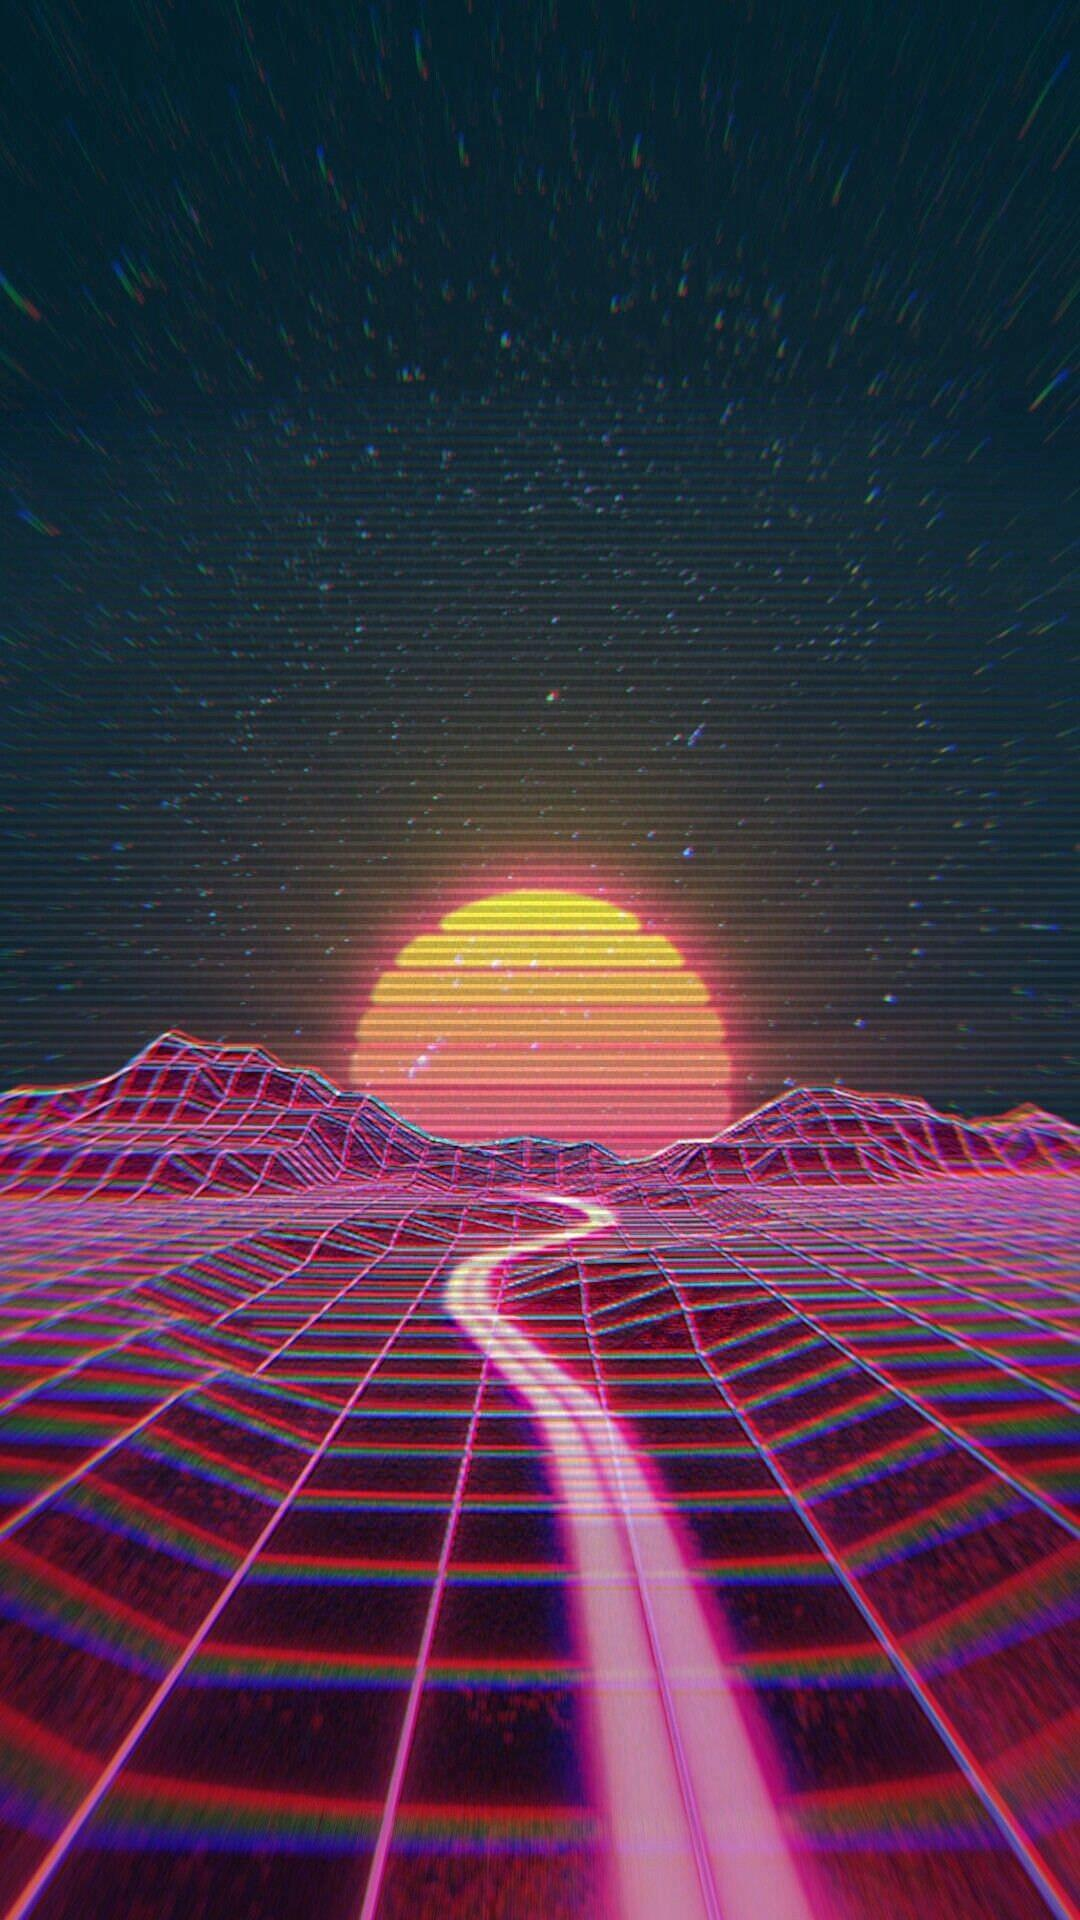 80's Aesthetic Wallpapers - Wallpaper Cave